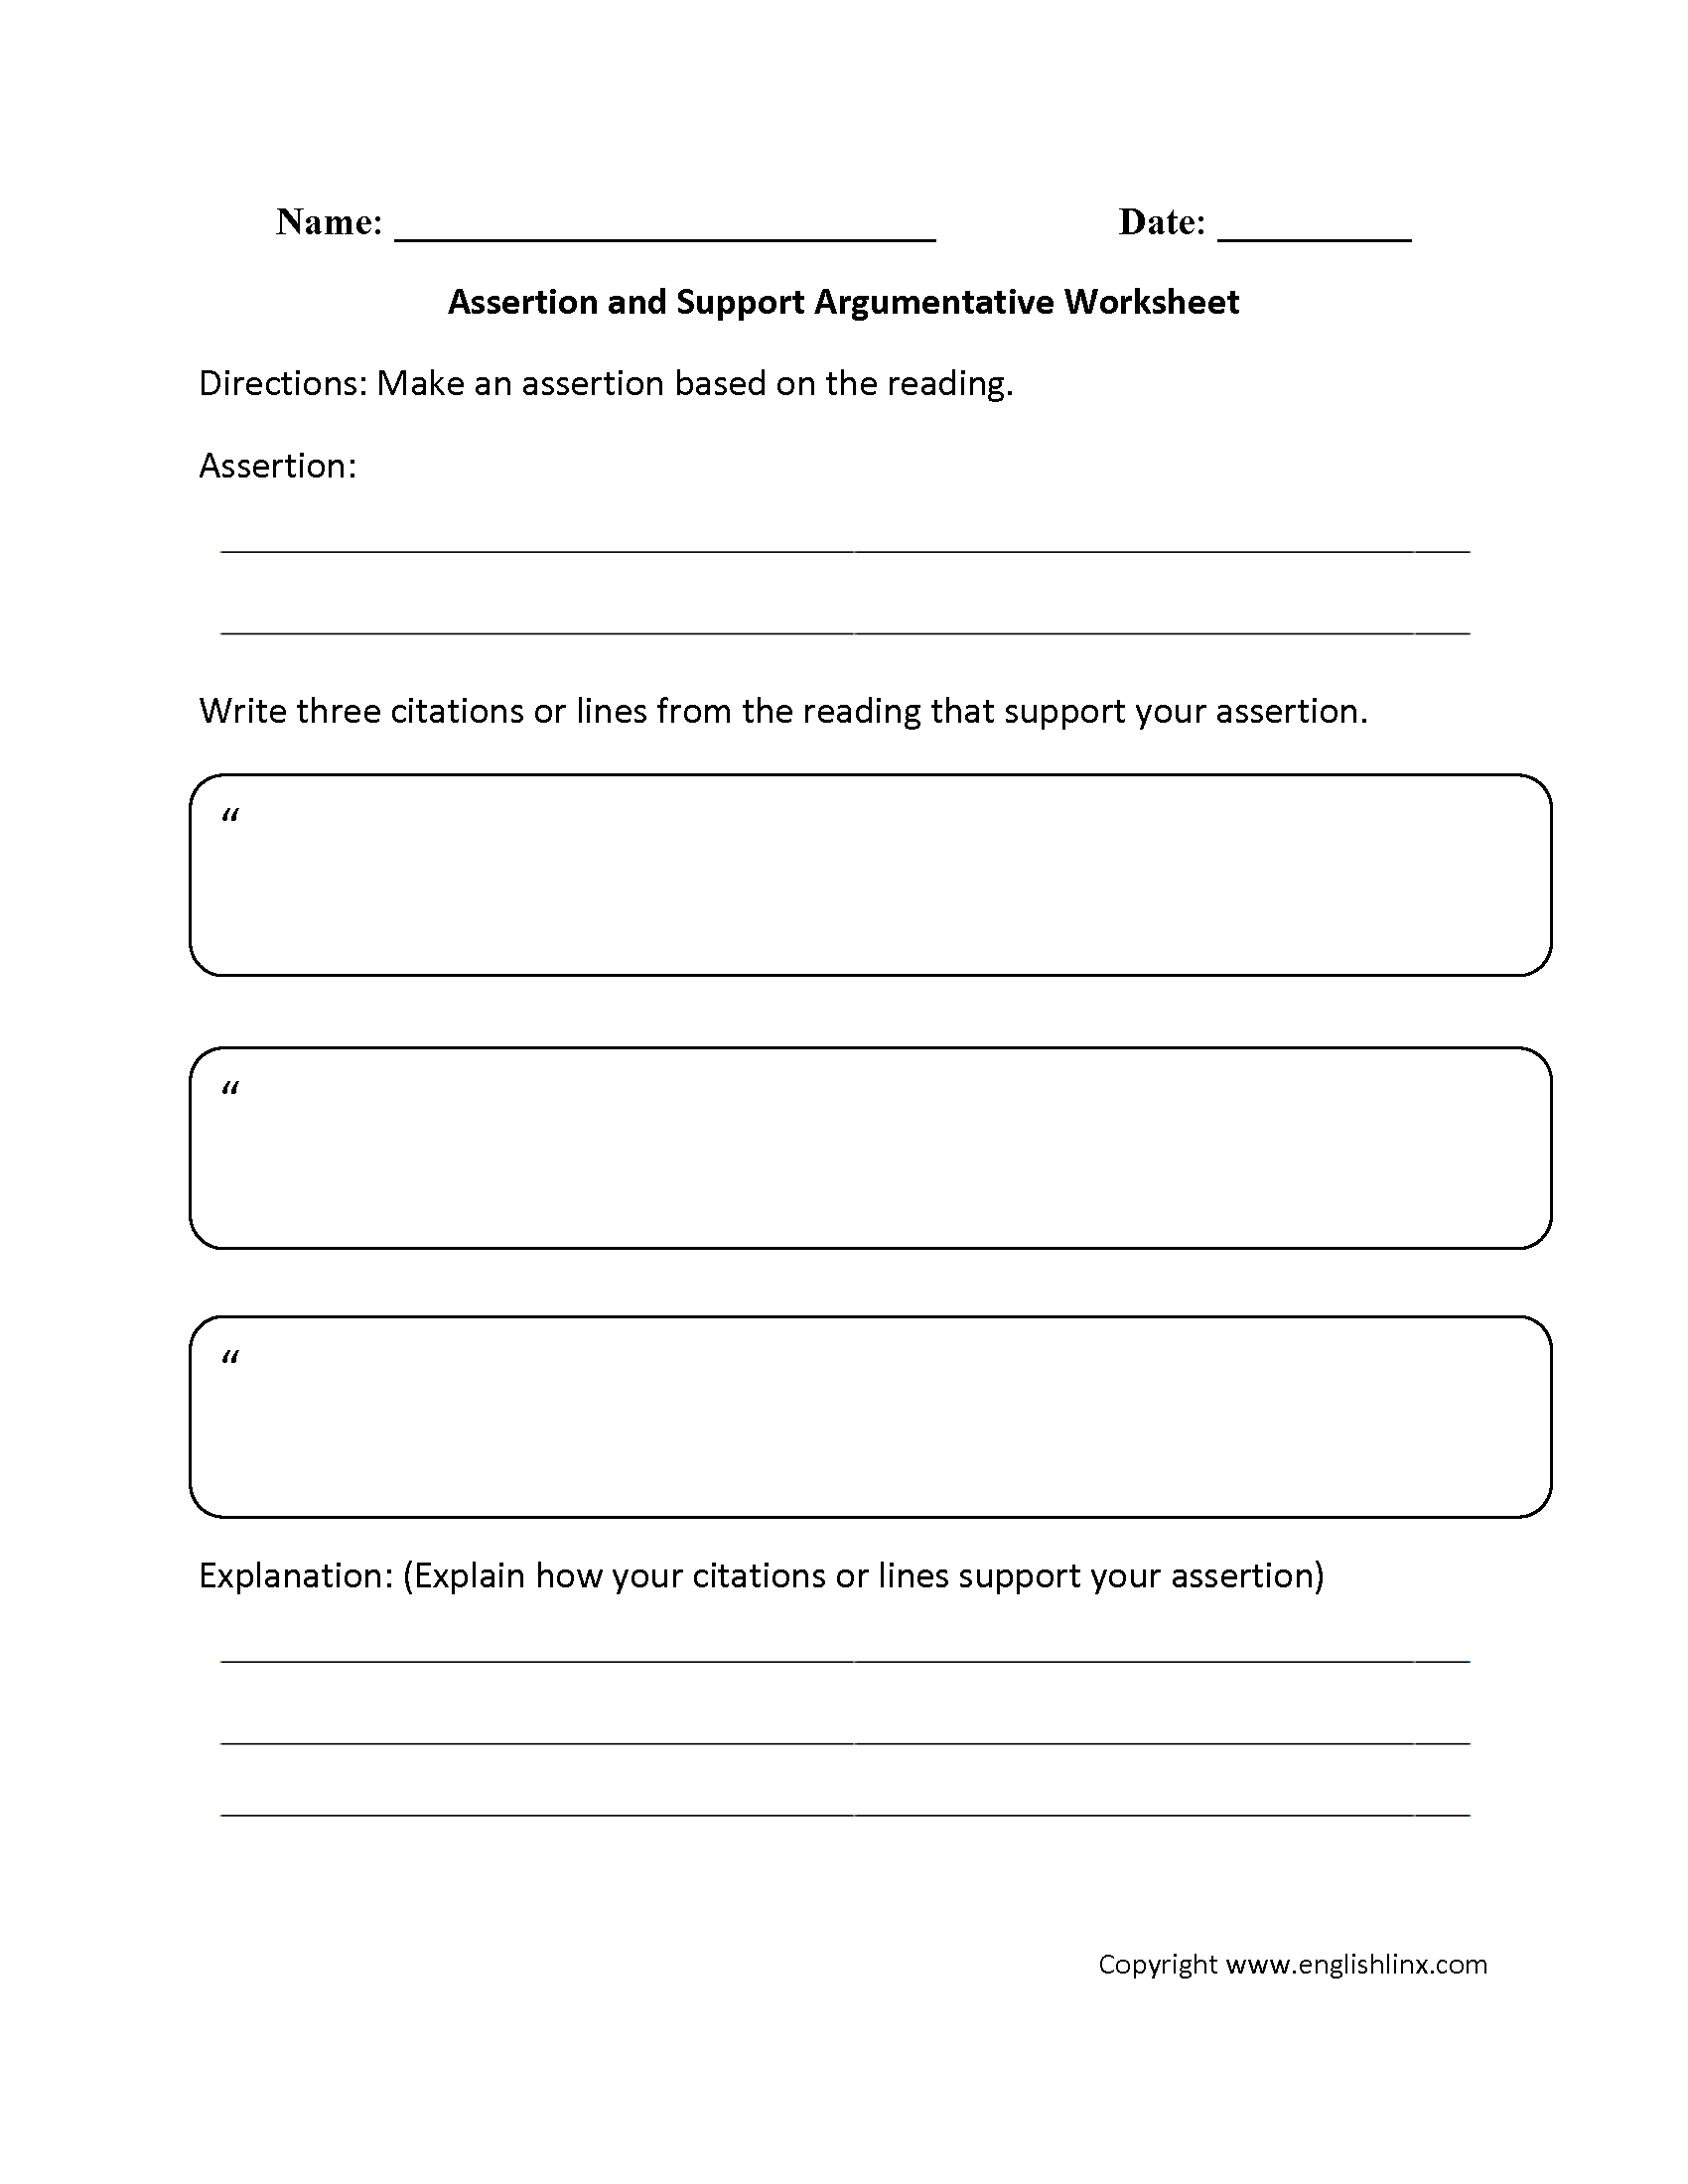 Argumentative essay worksheet